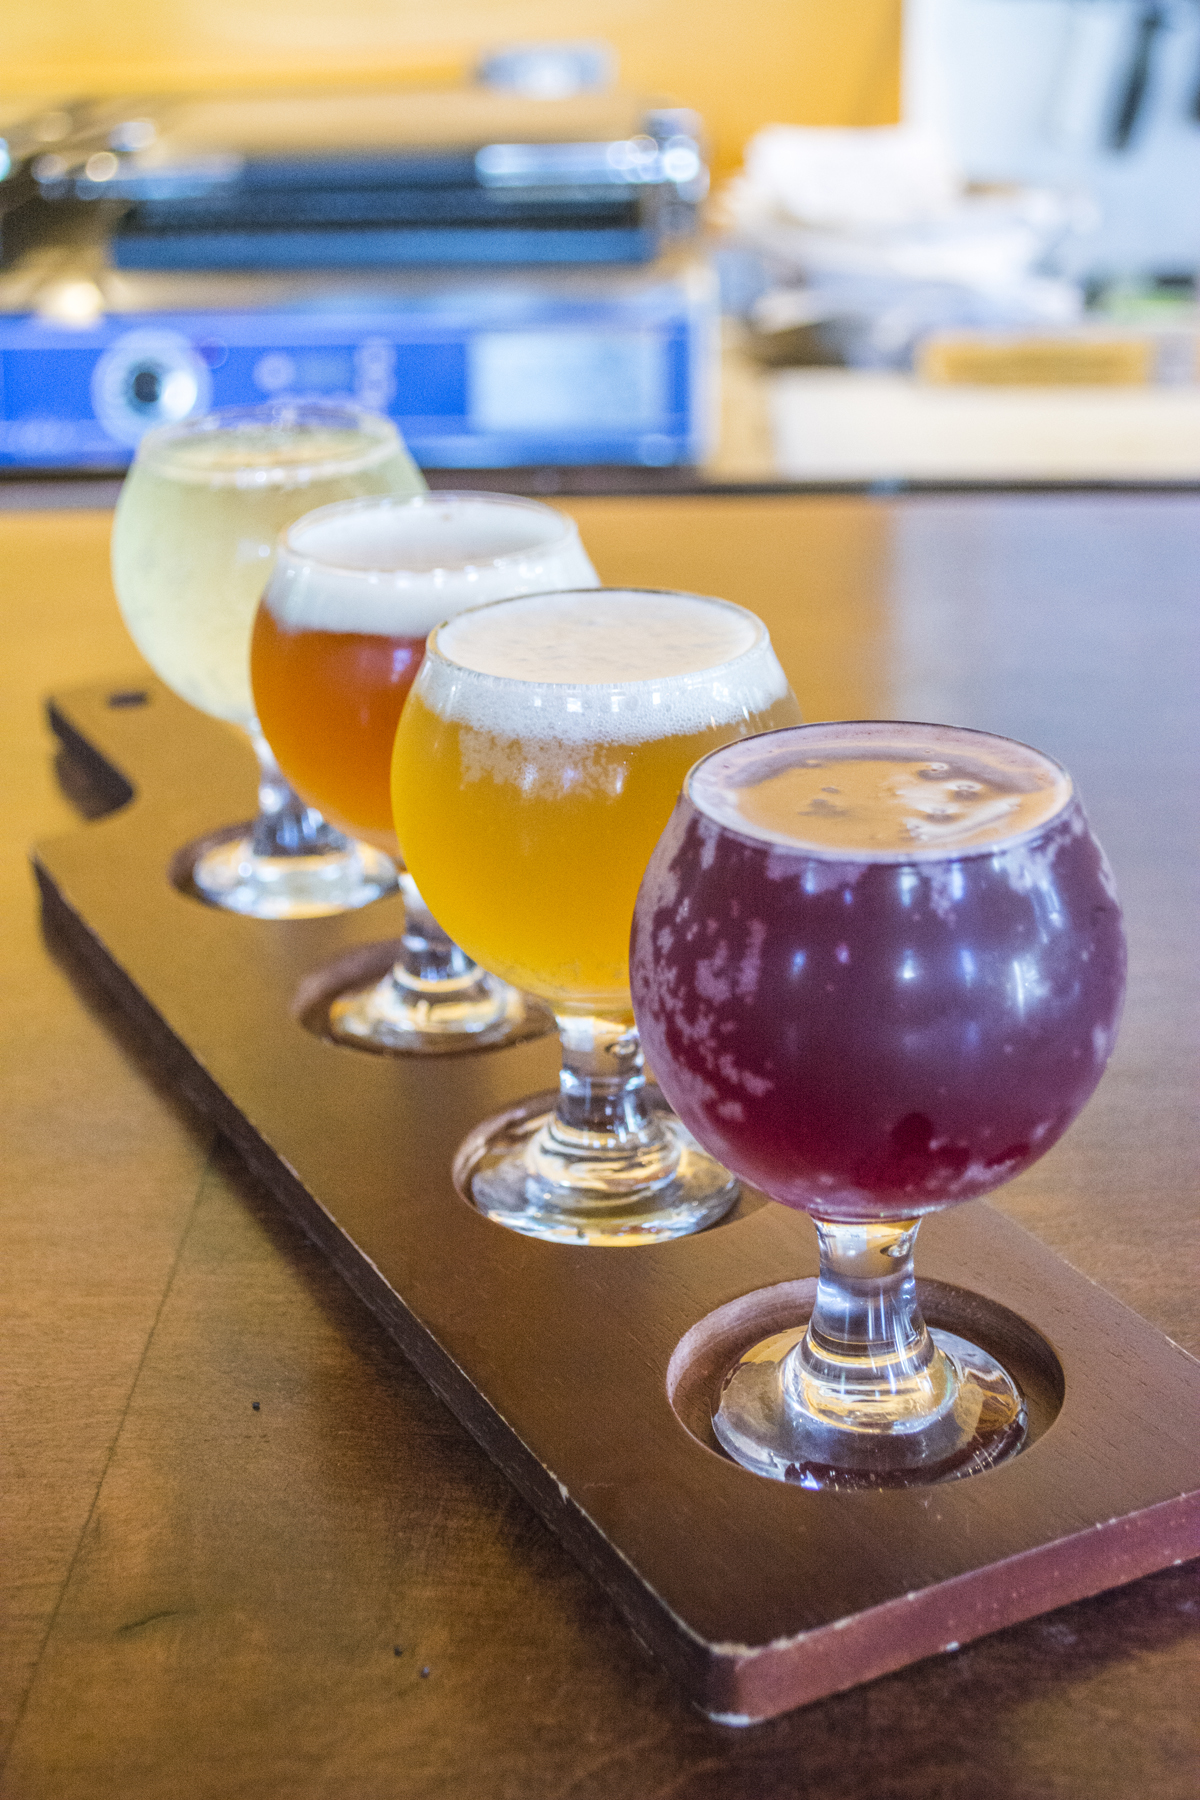 This beer flight includes, front to back, a blueberry sour ale, oat pale ale, pumpkin ale and hard cider.   Long Islander News photos/Barbara Fiore